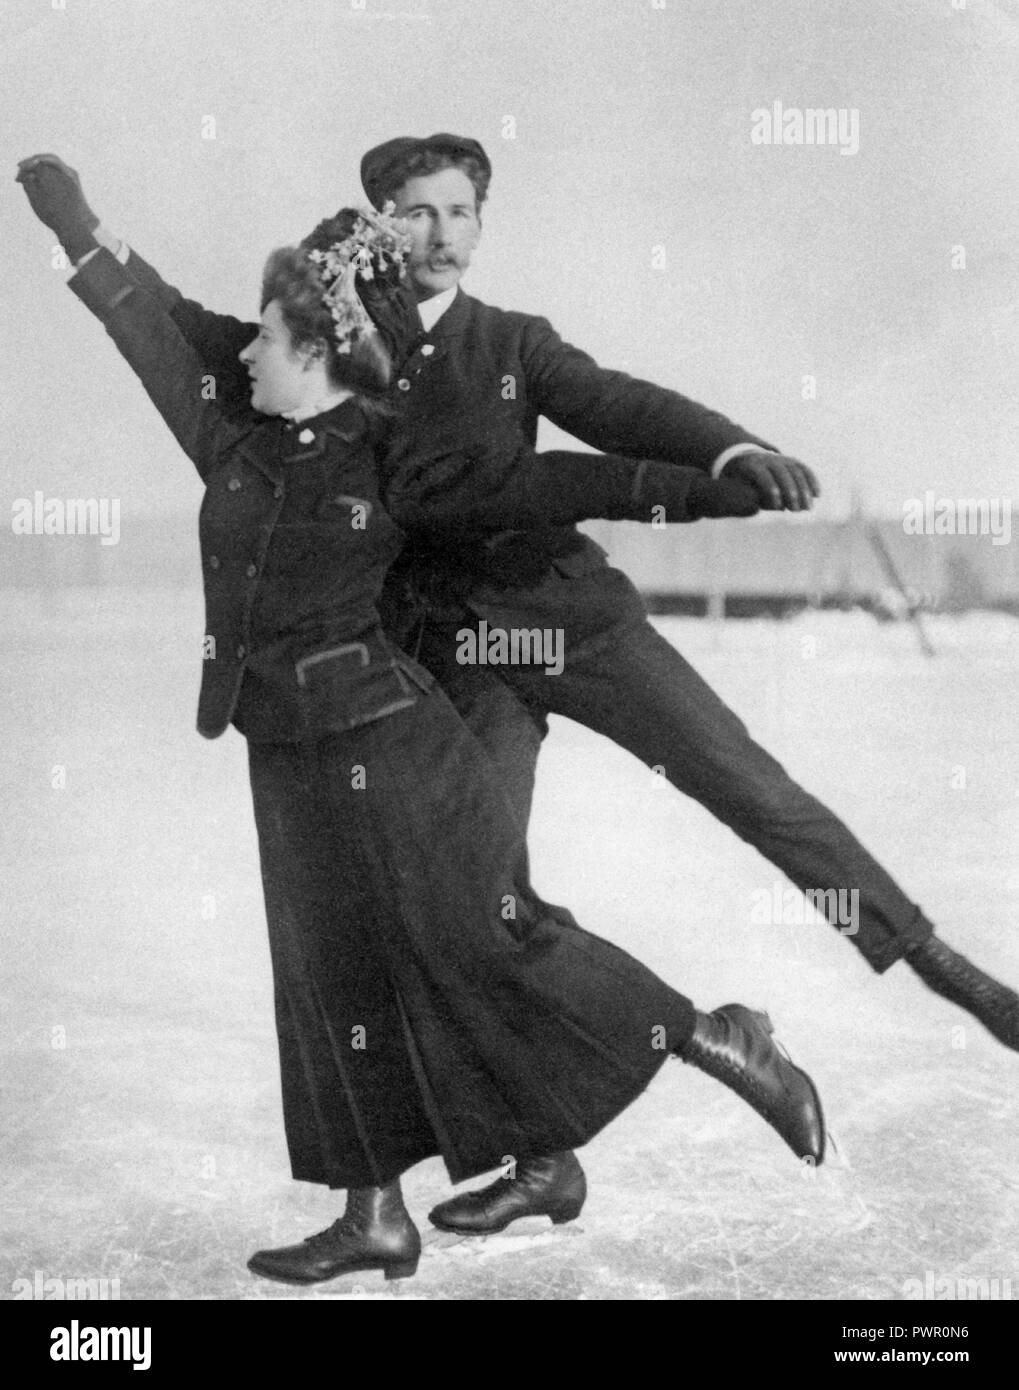 Figure skating at the turn of the century 1800-1900. A couple is pictured together when skating outdoors. - Stock Image